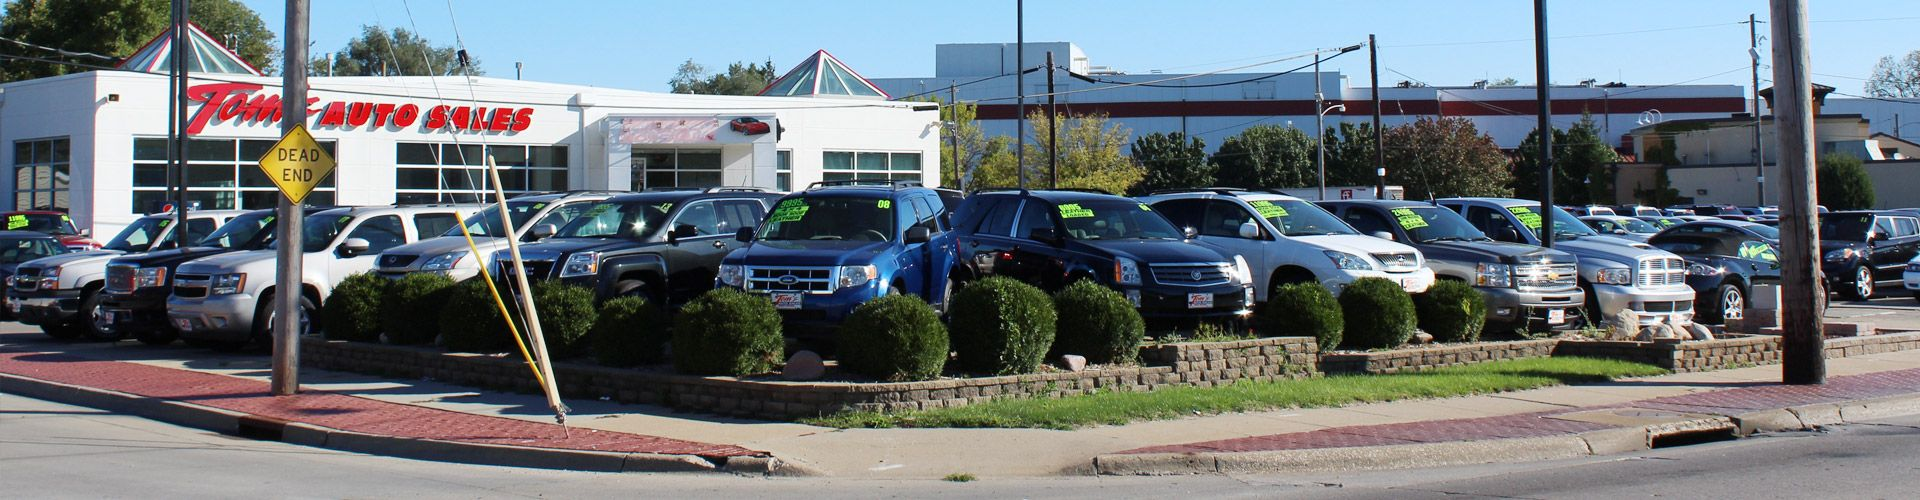 Car Dealerships In Des Moines >> Used Car, Truck, Van & SUV's Dealer in Des Moines, IA | Tom's Auto Sales